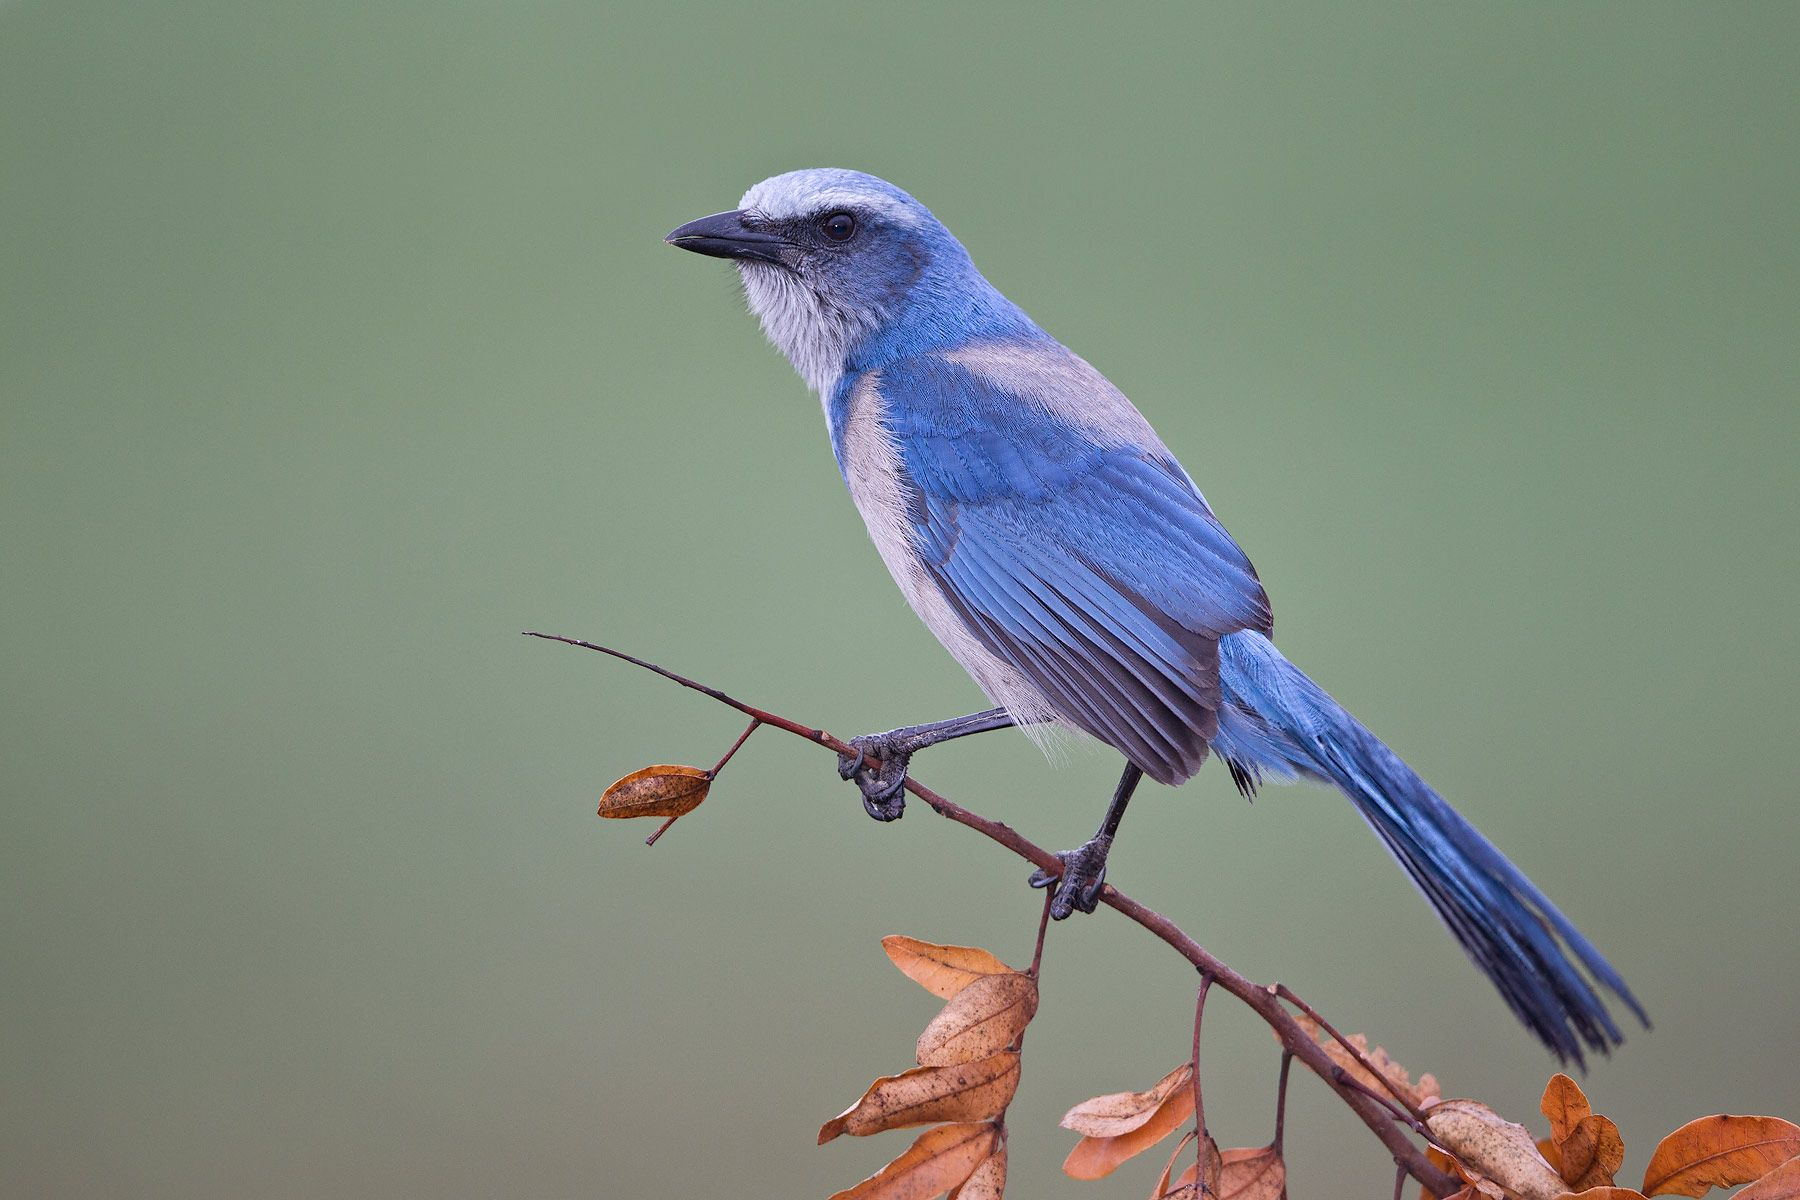 Scrub-Jay-sitting-on-perch-with-braun-leafs_M7E2095-Cape-Coral,-FL.jpg